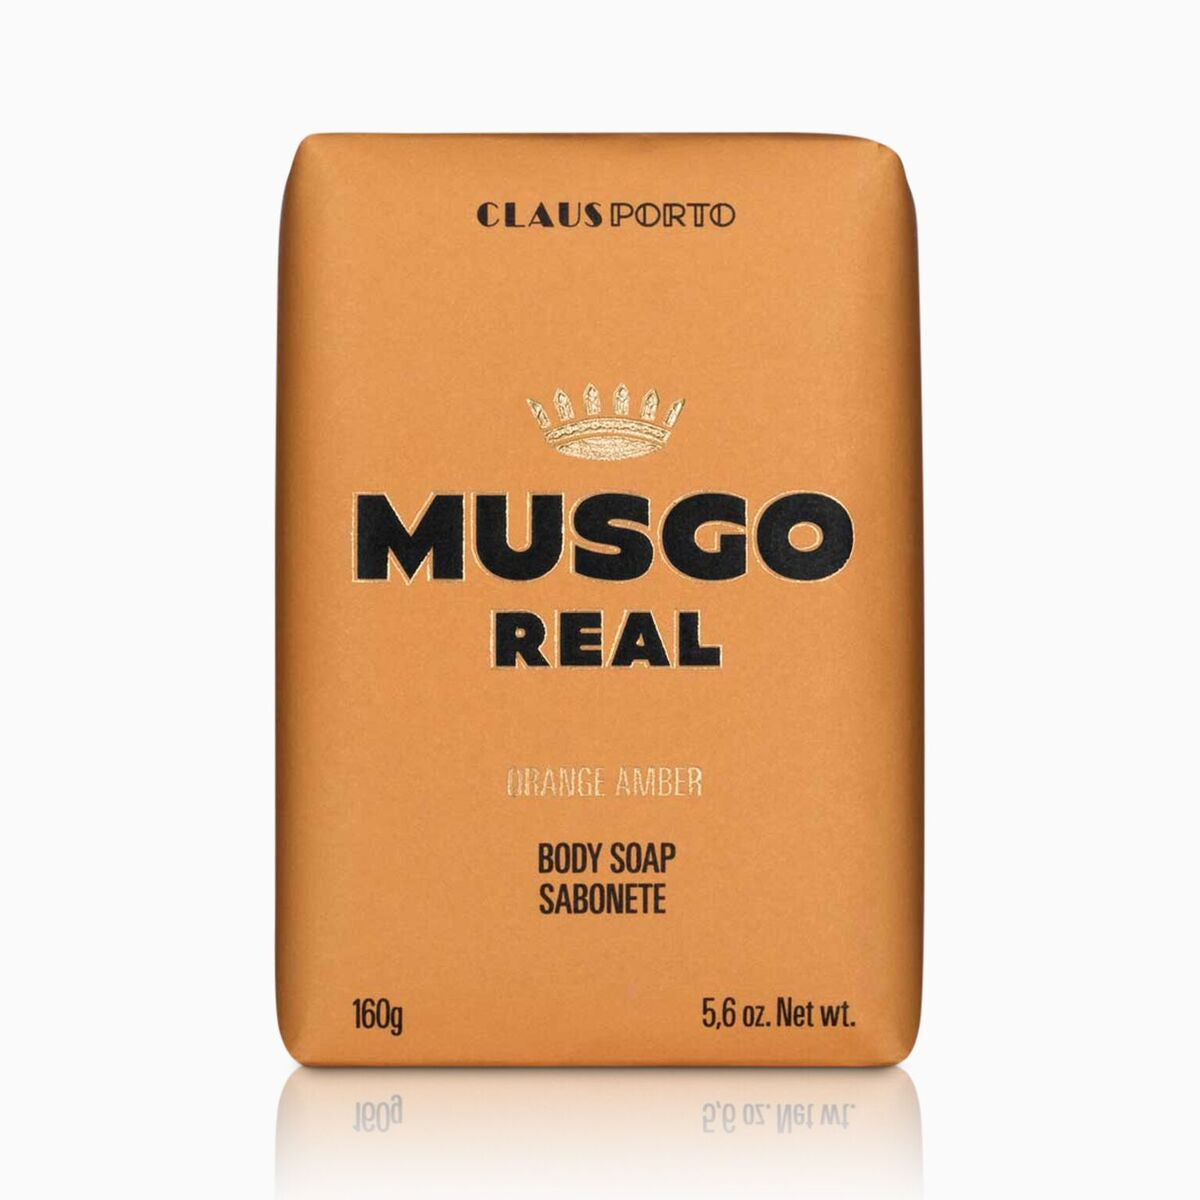 Musco real Orange amber